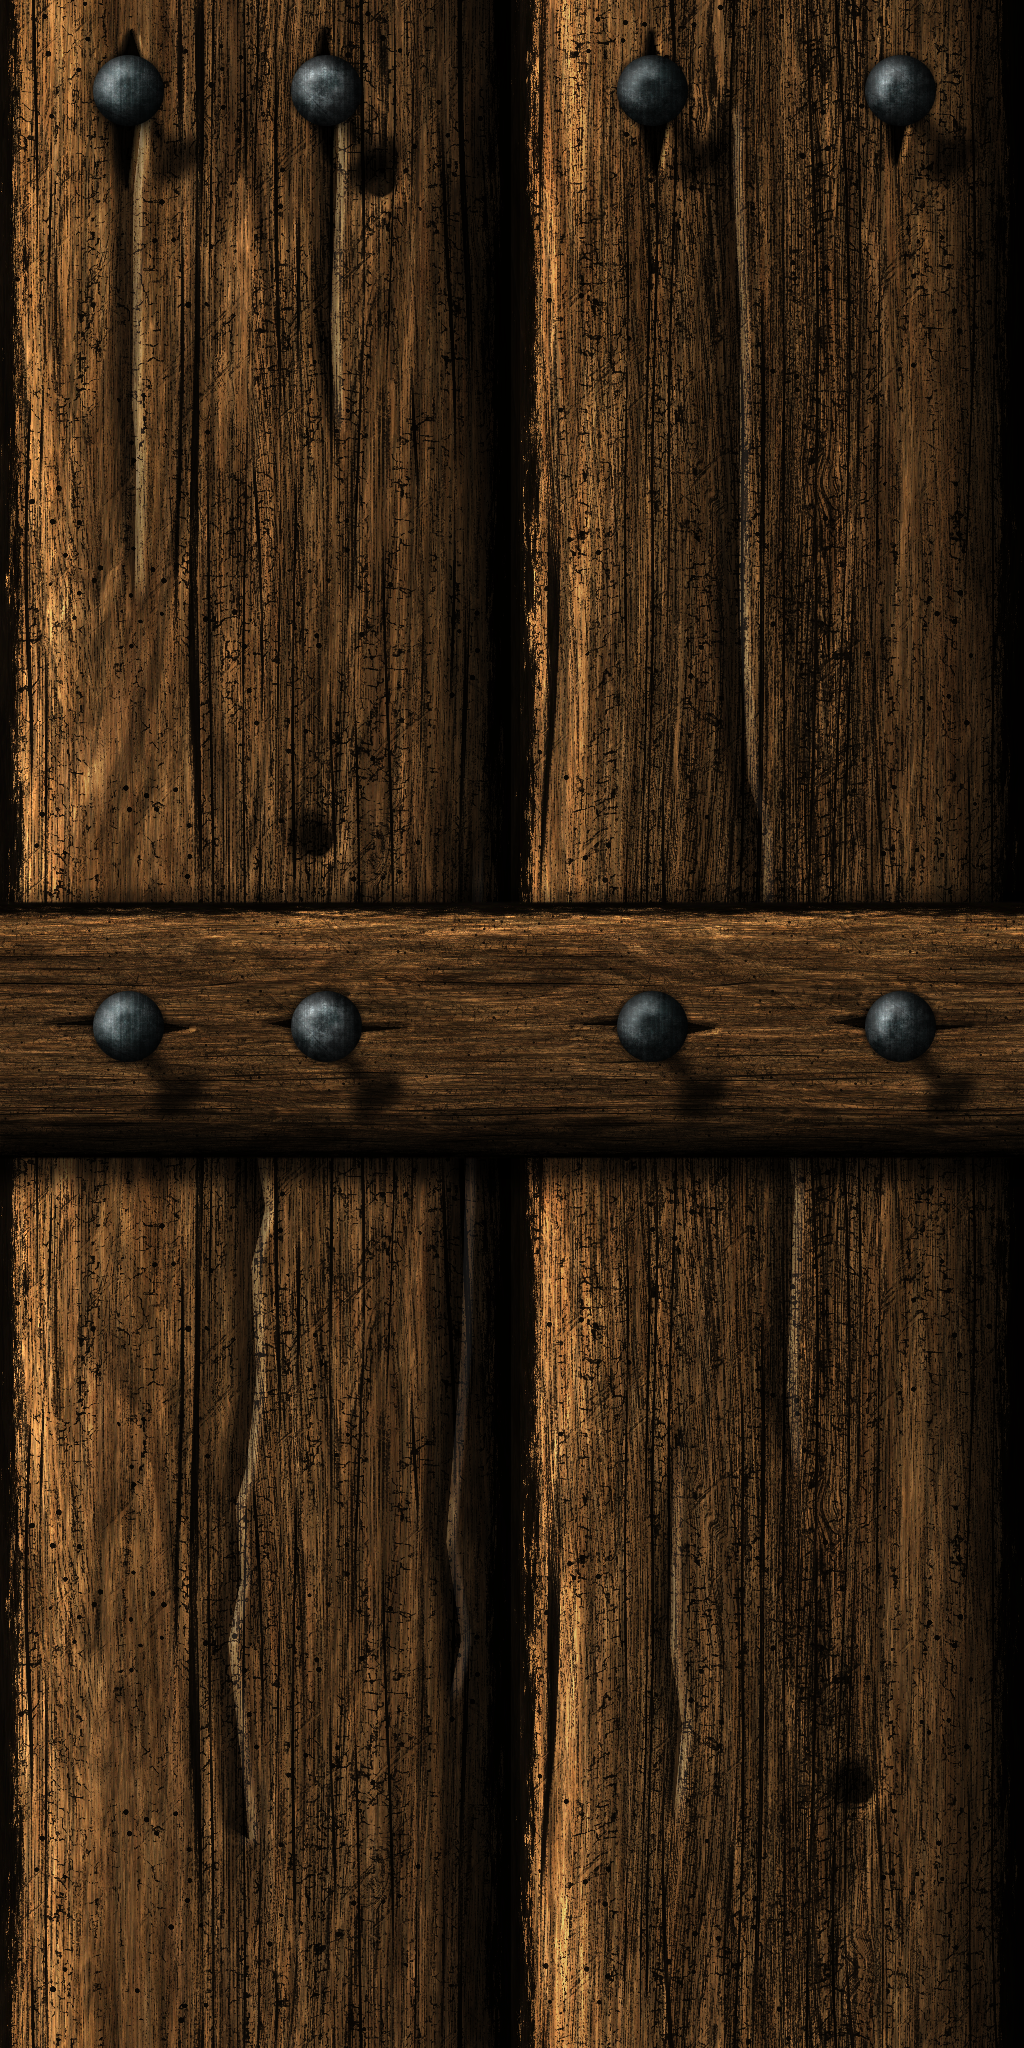 wood6_by_hoover1979-dbv3yzw.png